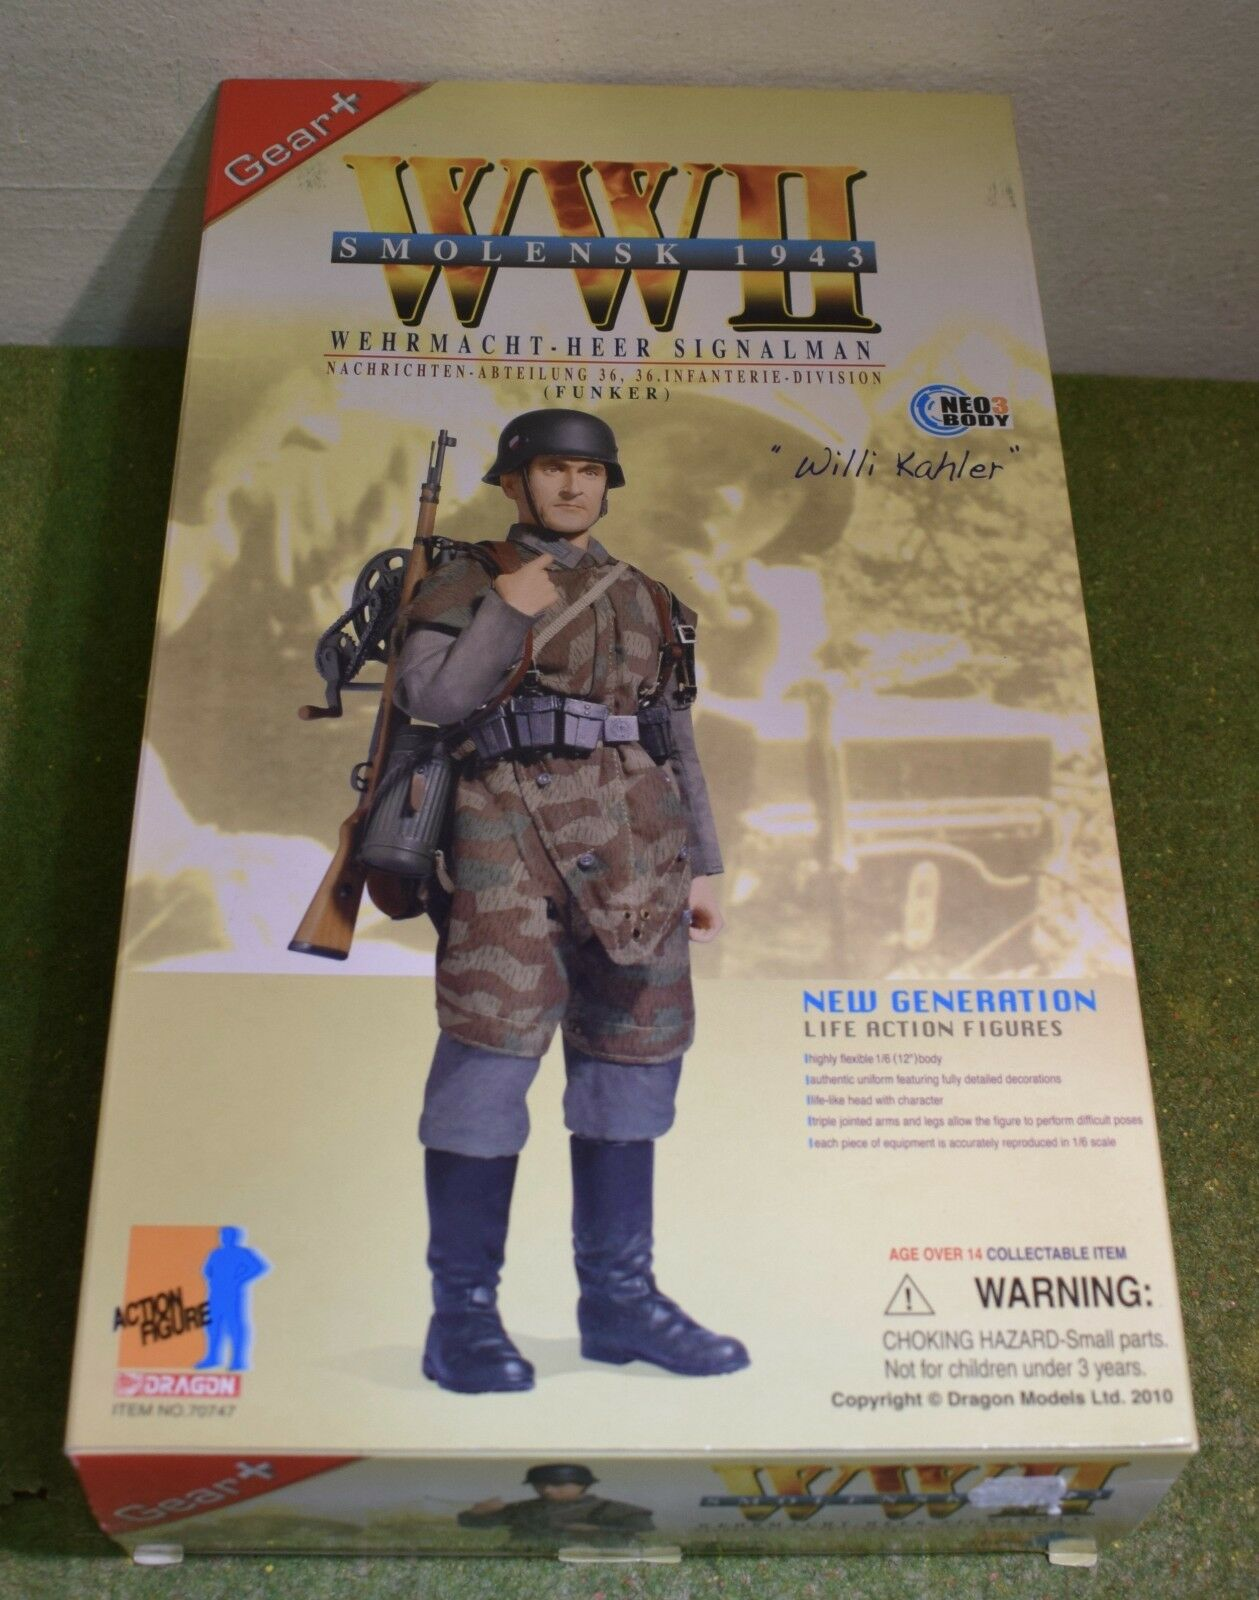 DRAGON 1/6 SCALE WW II GERMAN WILLI KAHLER 70747 WEHRMACHT-HEER SIGNALMAN